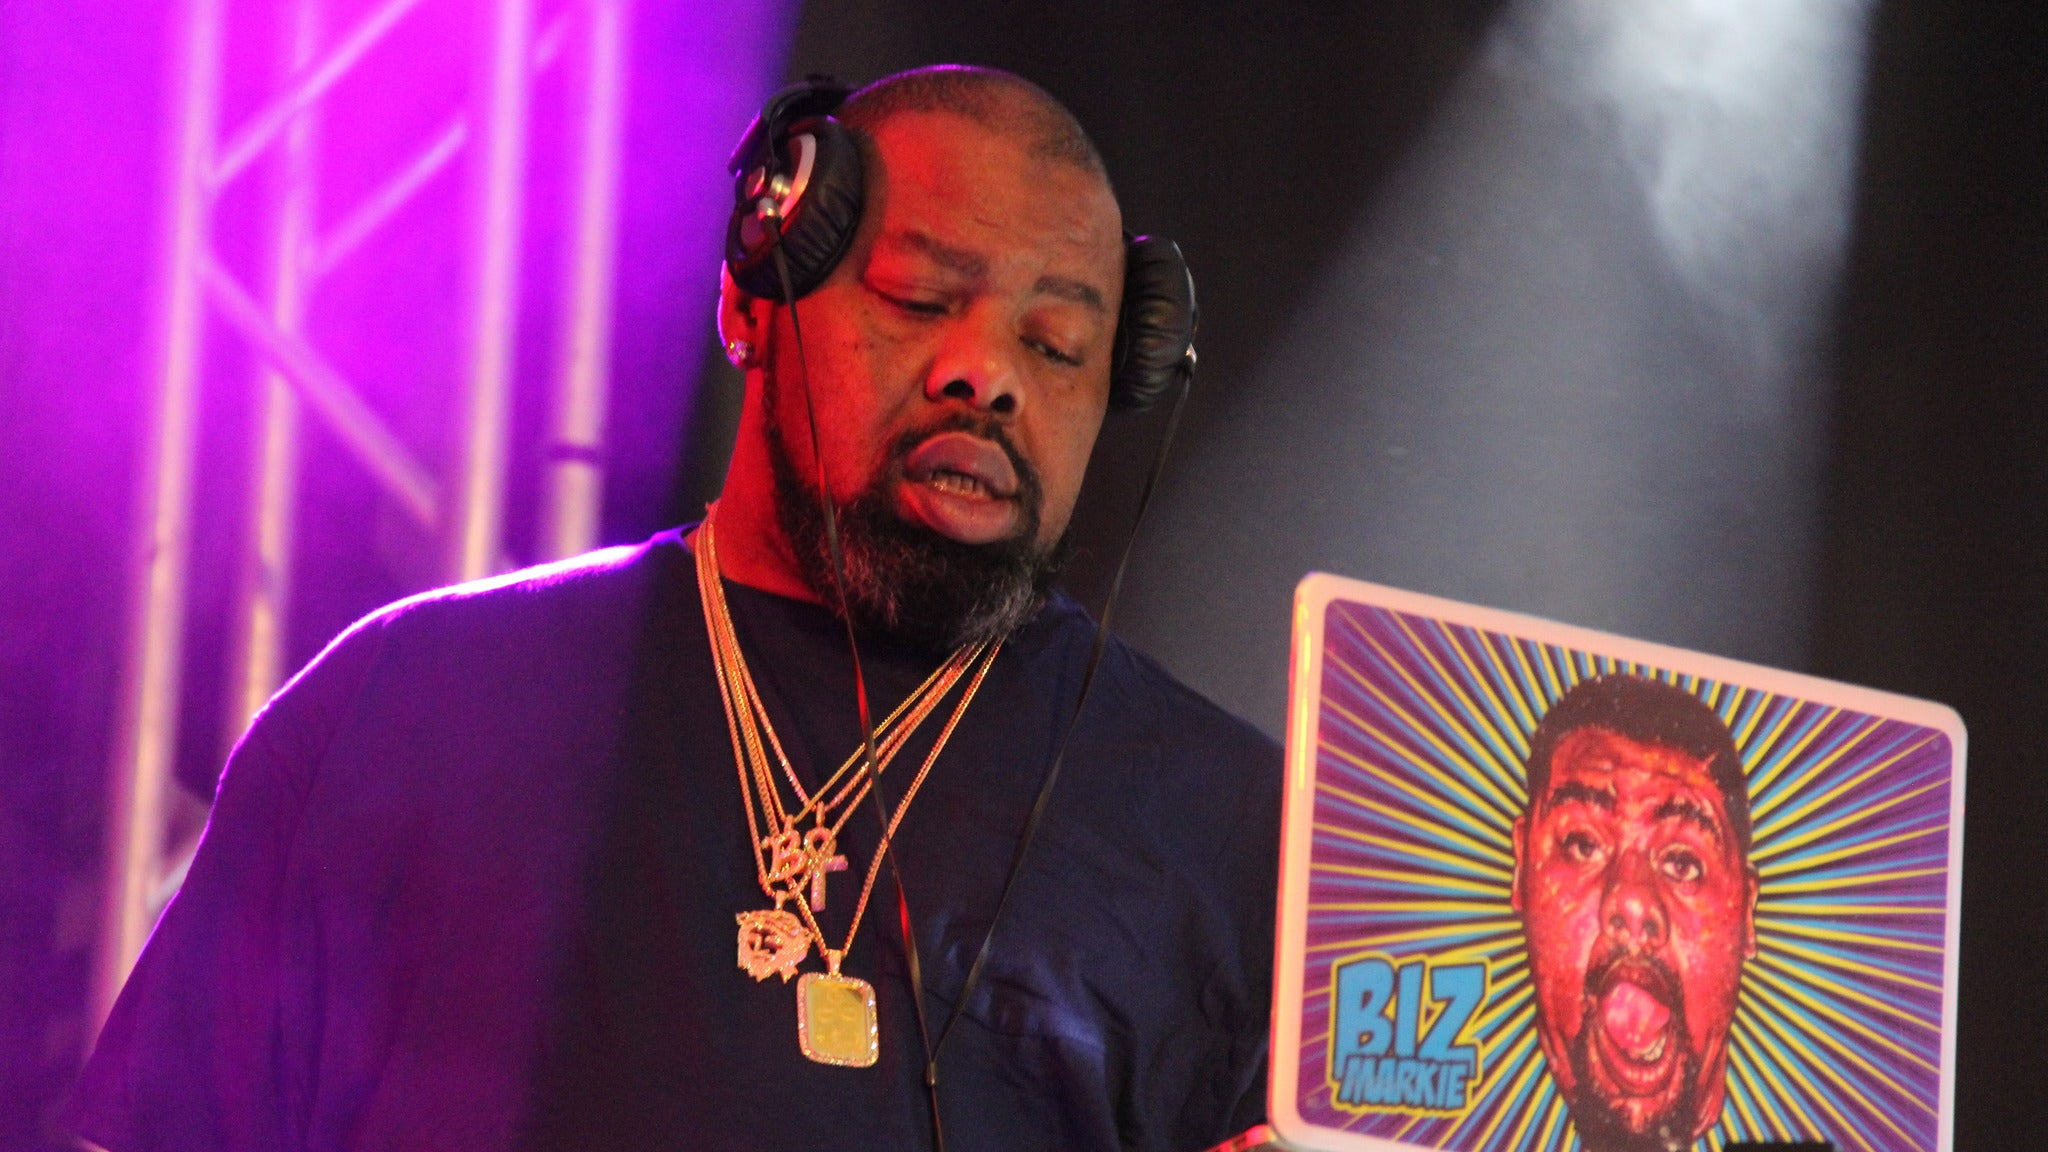 Decades Collide 80s vs 90s Party w/ DJ Biz Markie